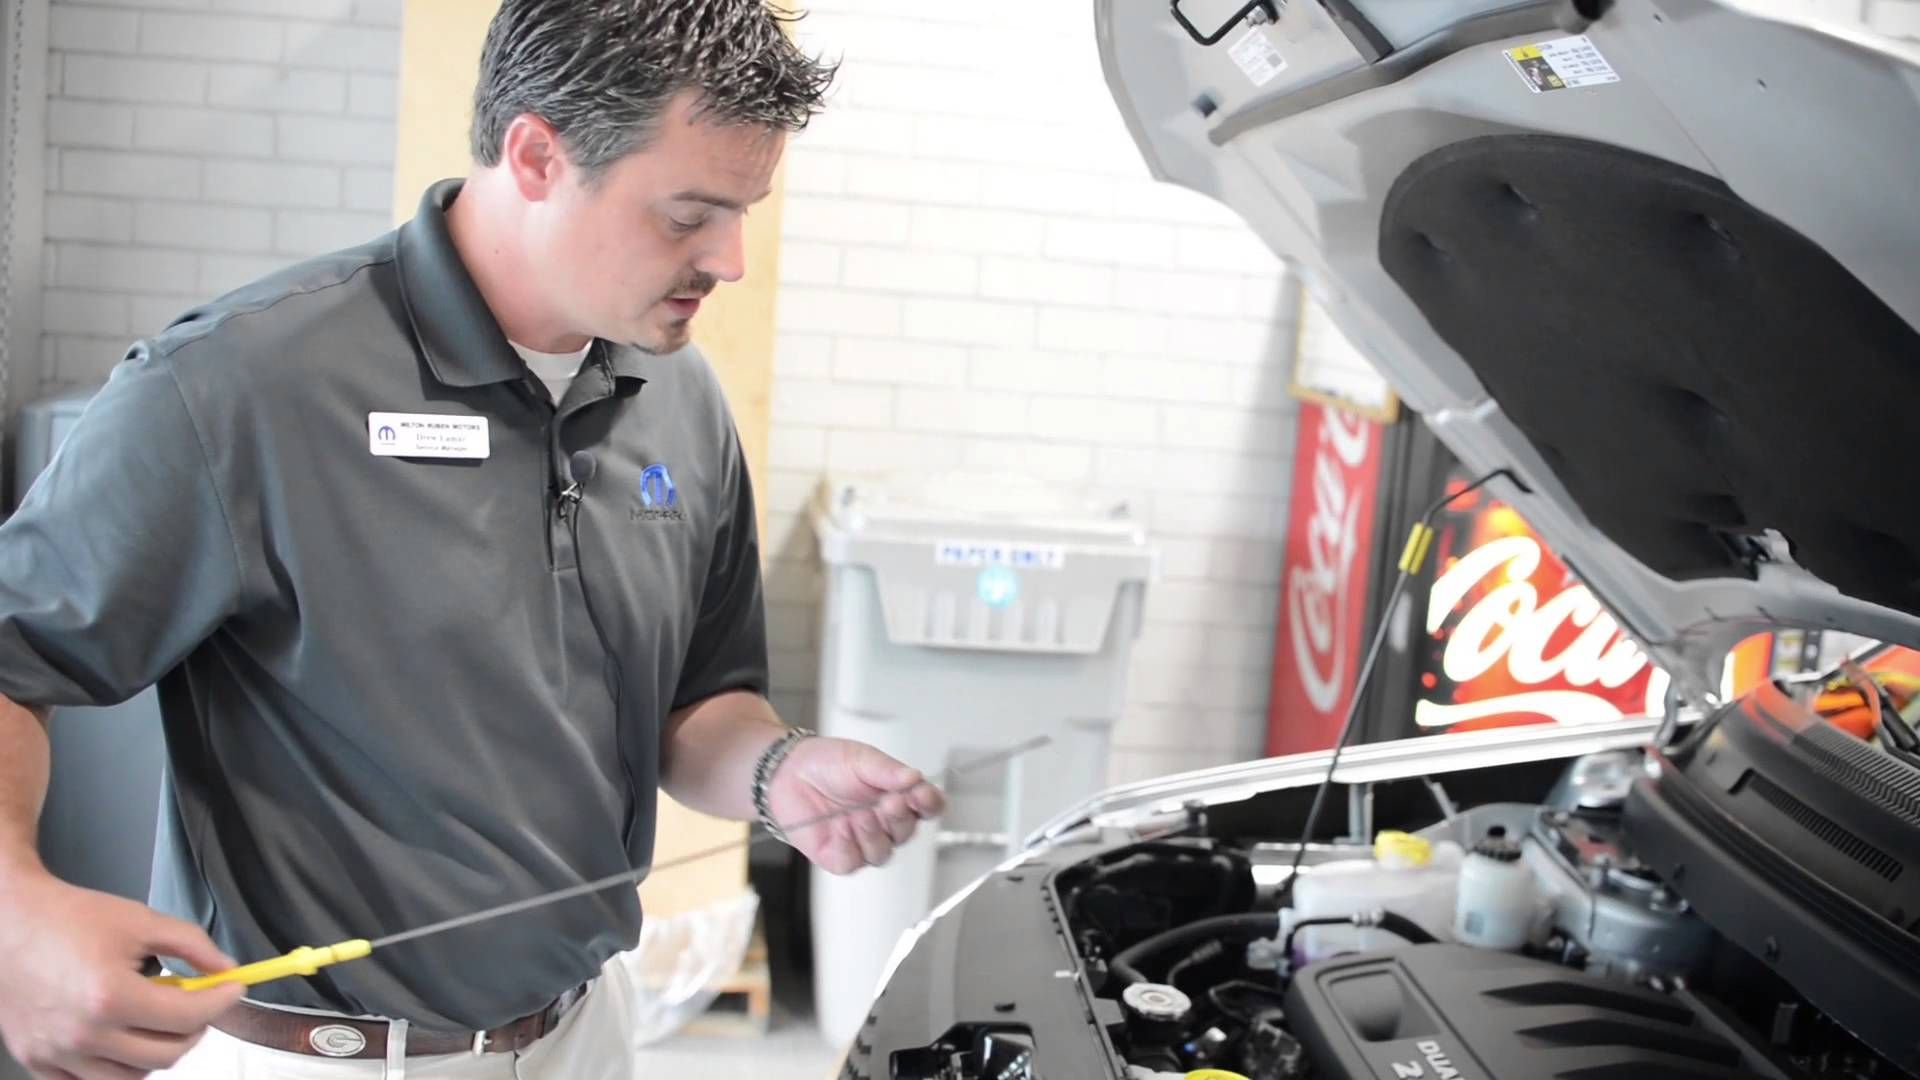 So, how often should you change your oil? Why? And how do